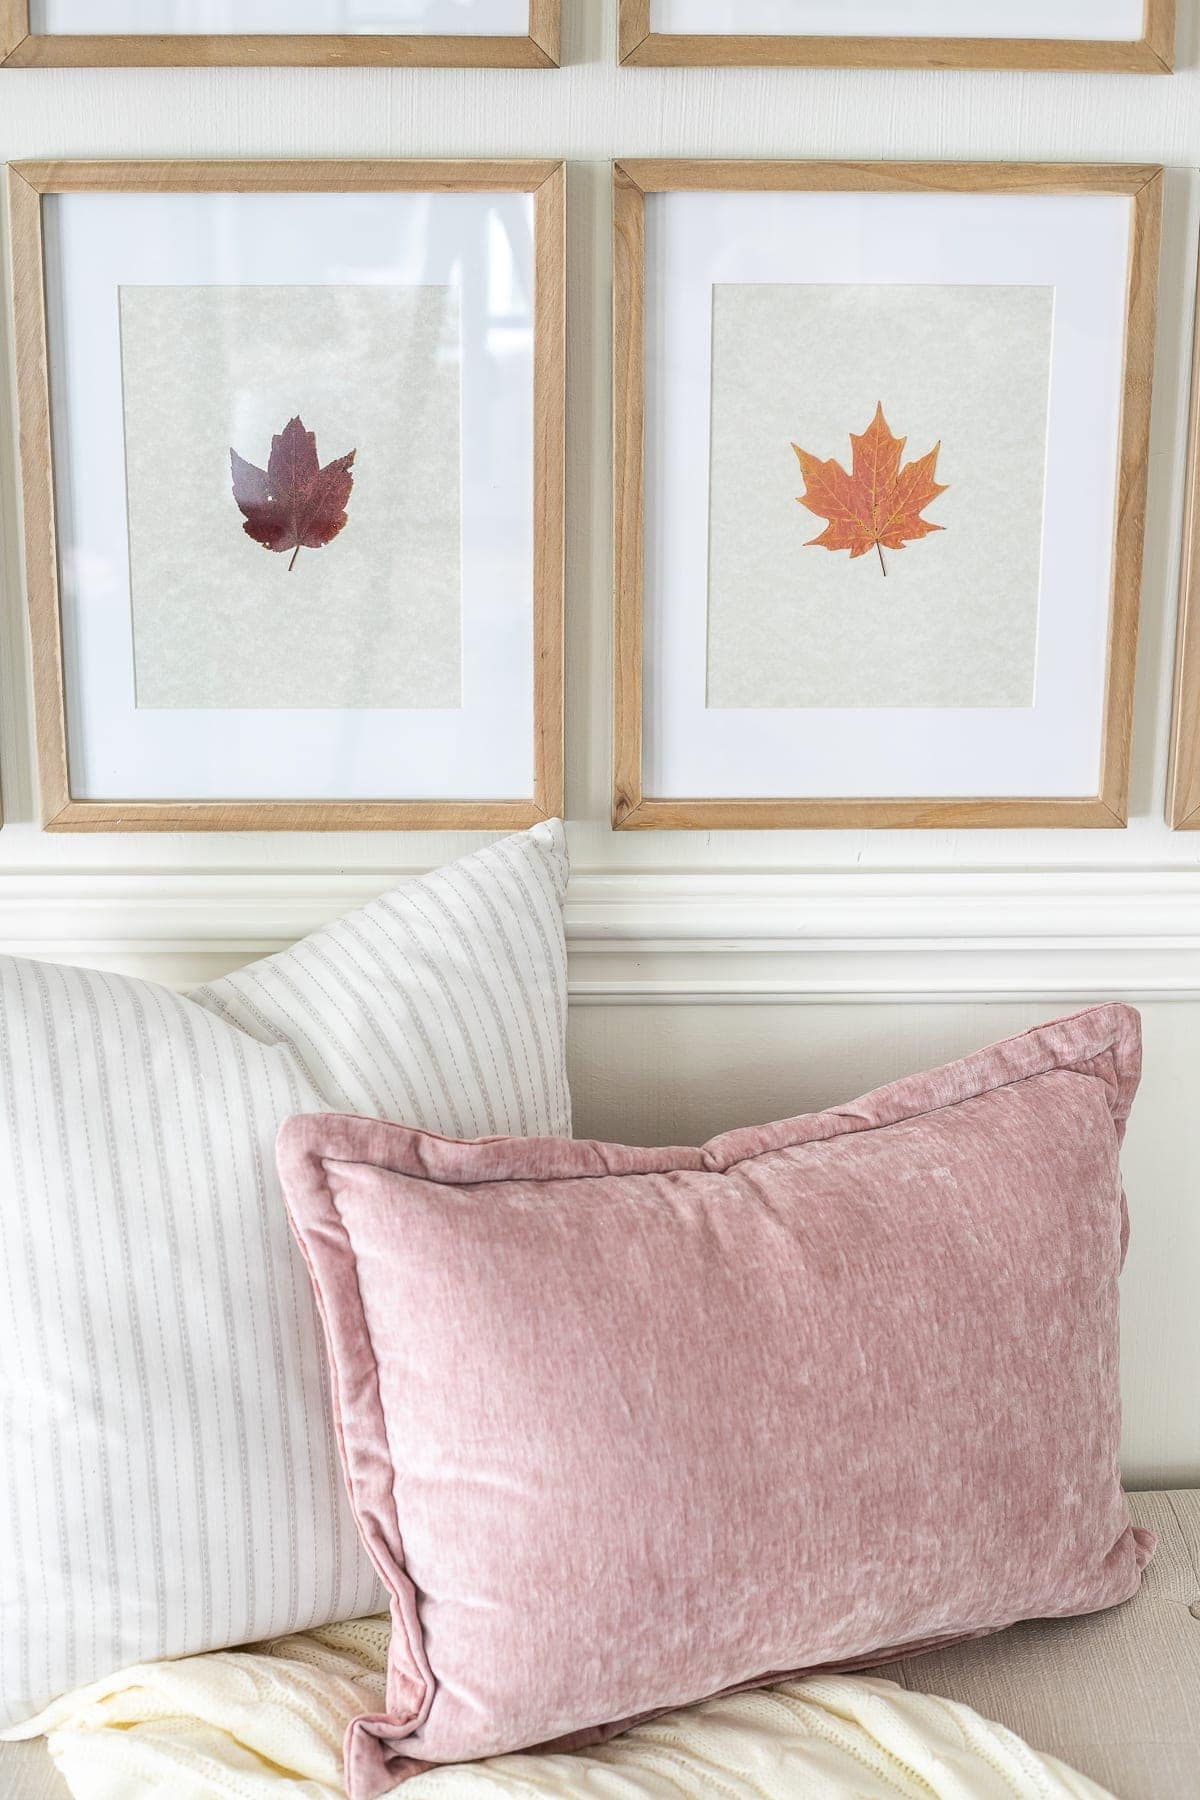 pressed fall leaves framed and neutral and blush throw pillows